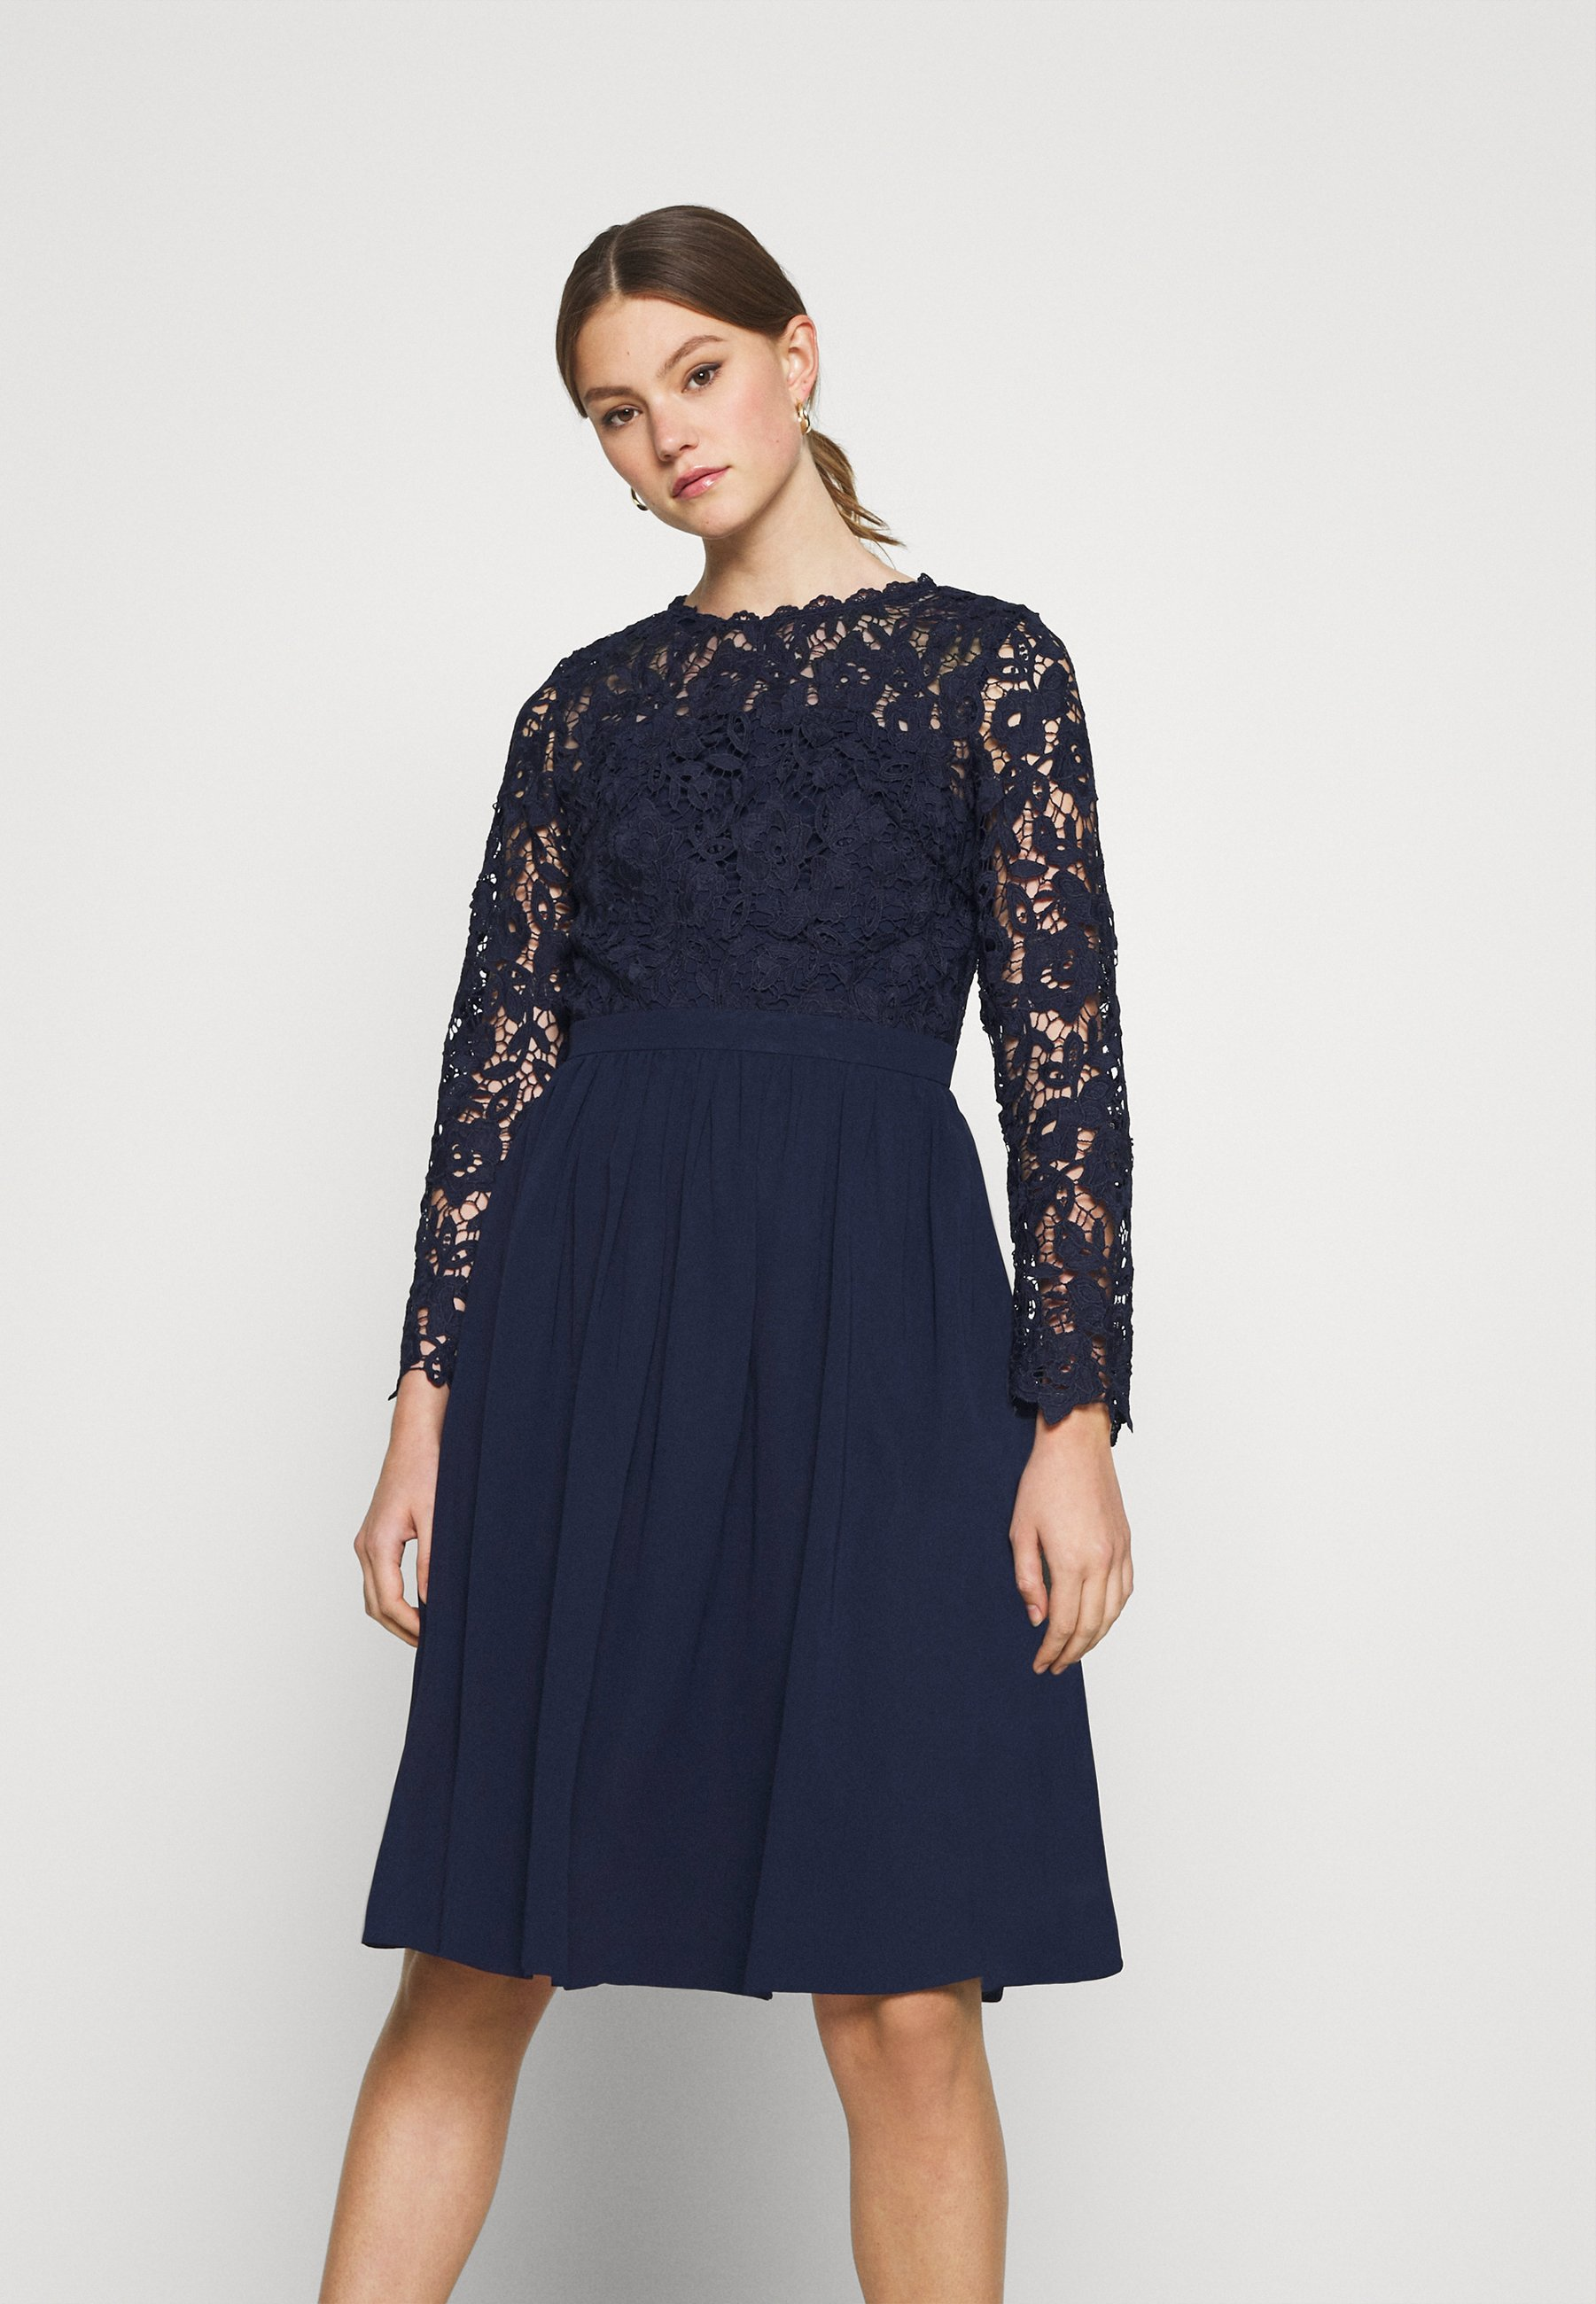 lyana dress - cocktailkleid/festliches kleid - navy